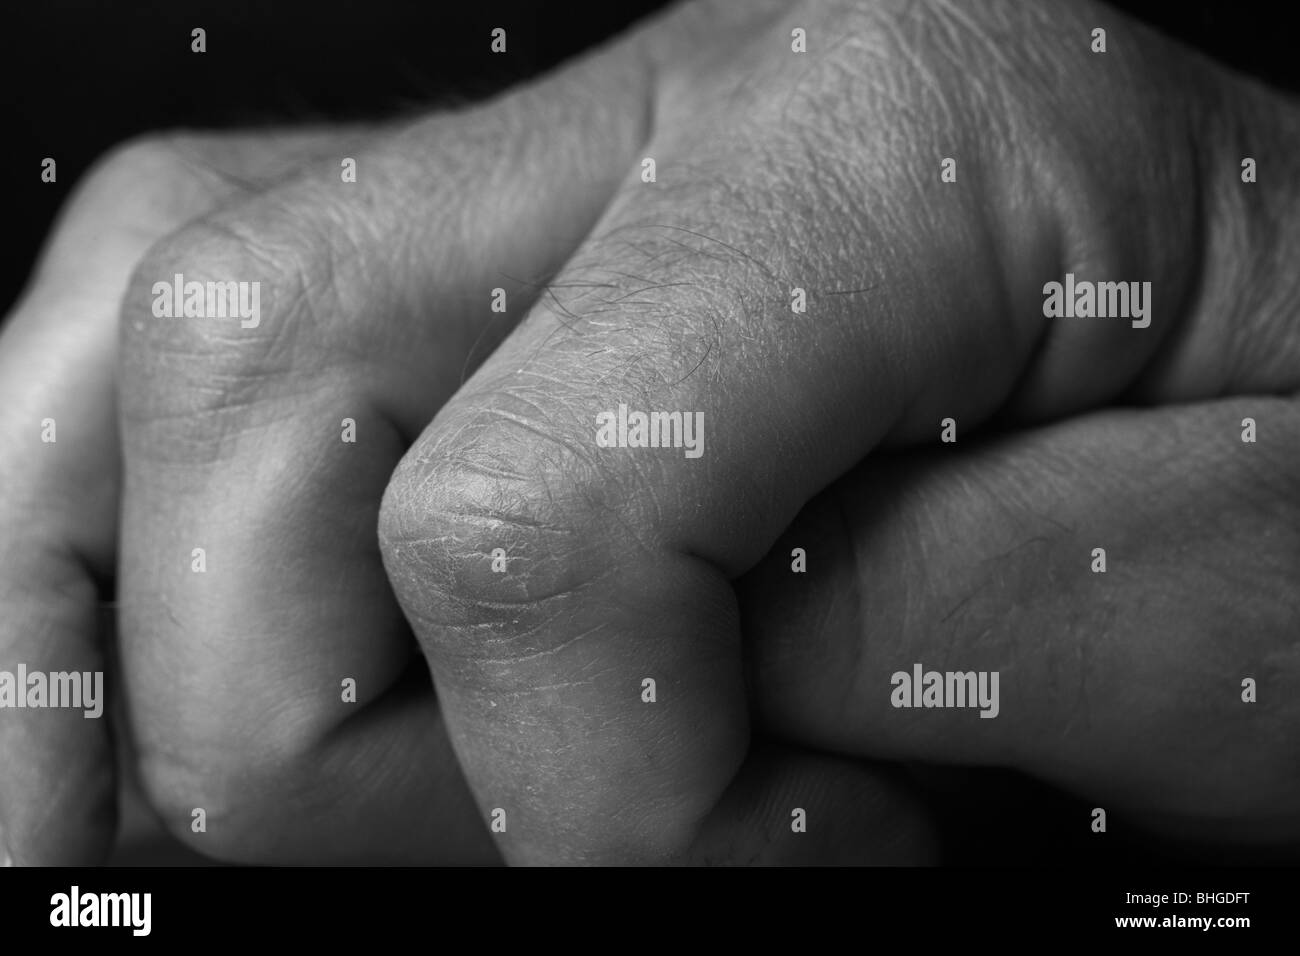 Fingers, close-up, Sweden. - Stock Image